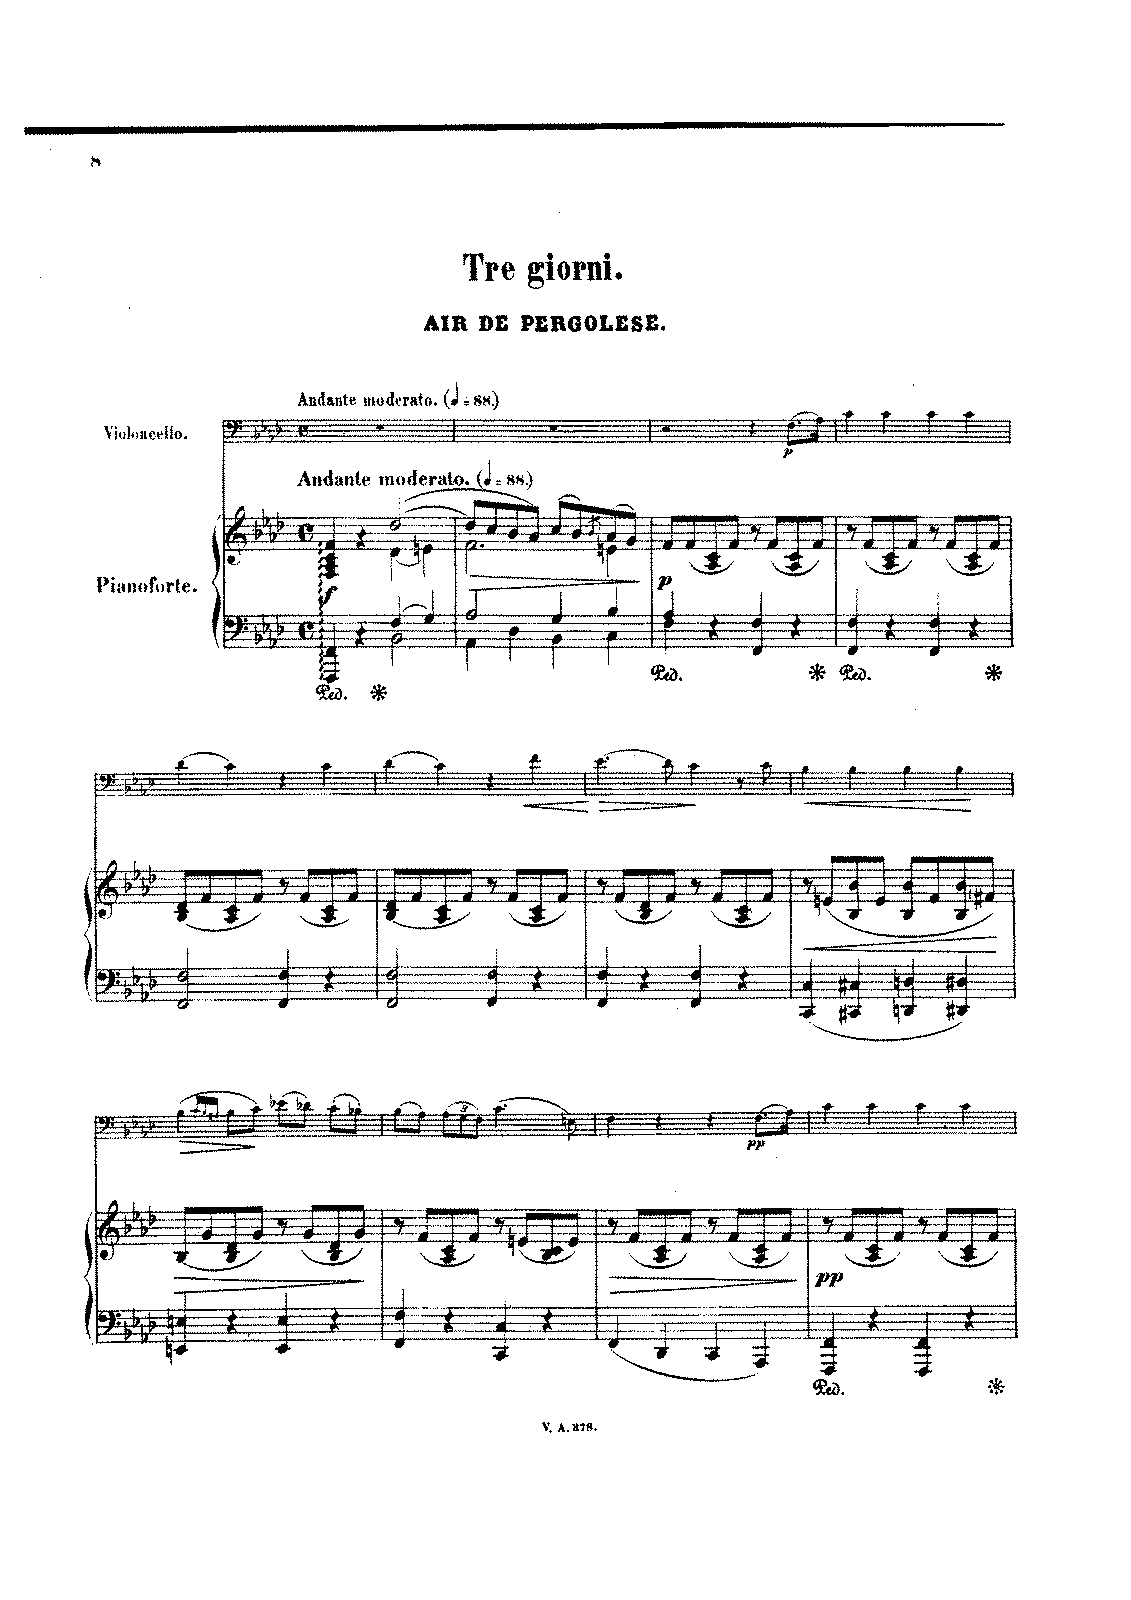 PMLP51683-Pergolese - Tre Giorni Air for Cello and Piano score.pdf